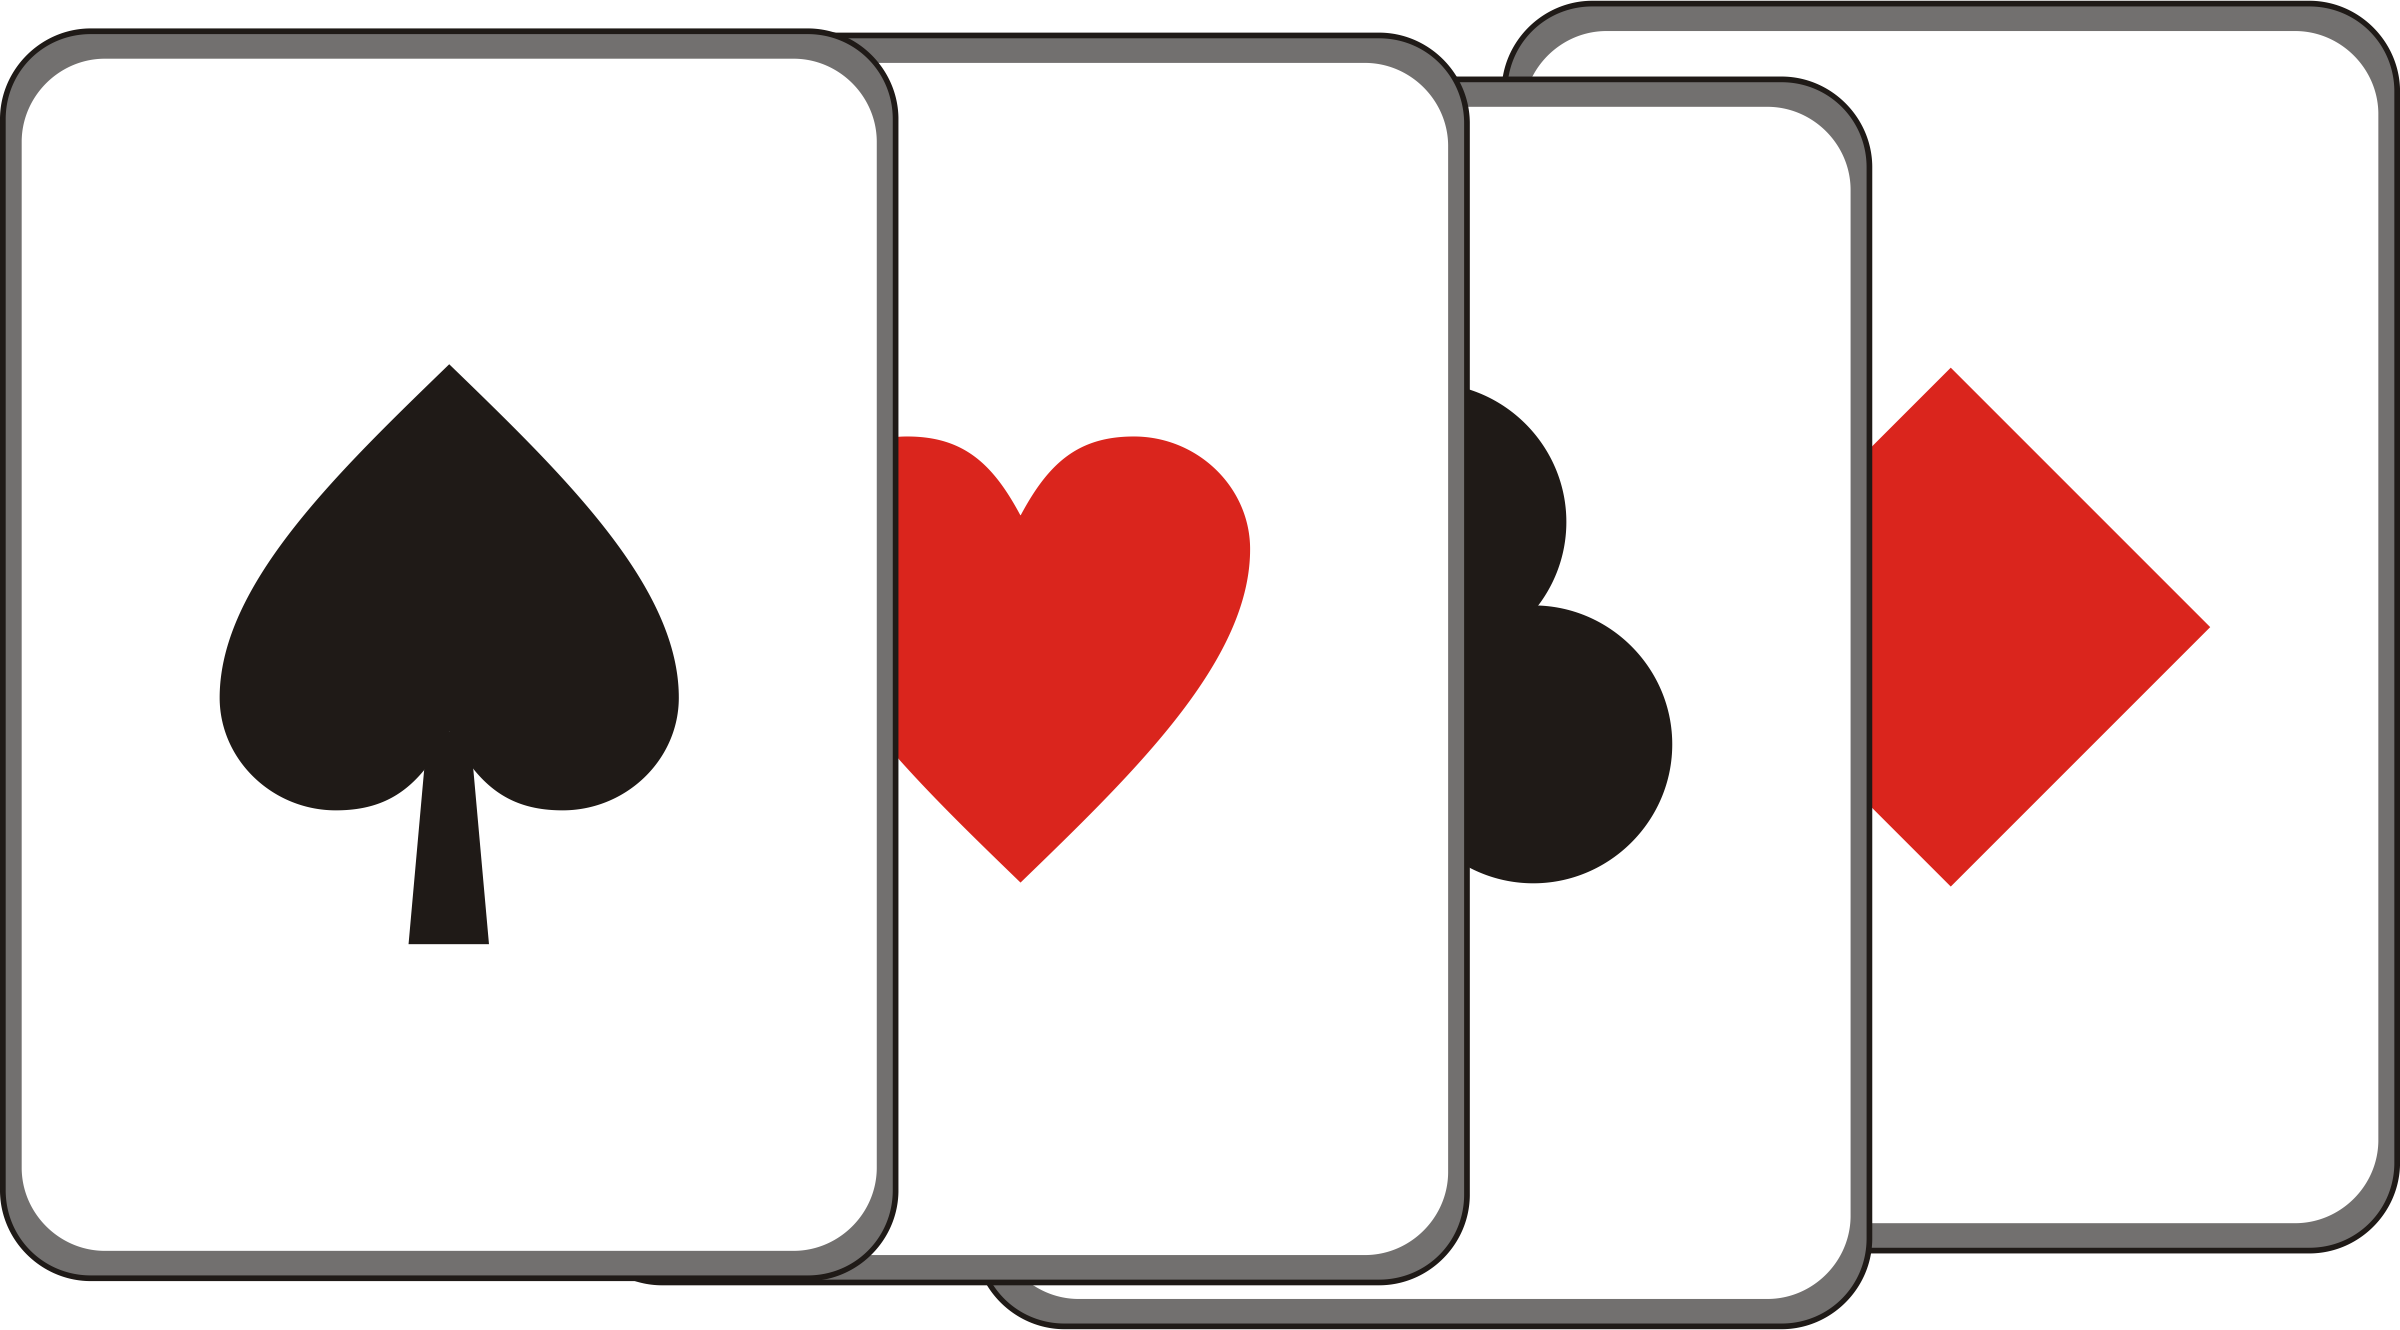 Playing card images clipart clip stock Game Cards Cliparts | Free download best Game Cards Cliparts ... clip stock